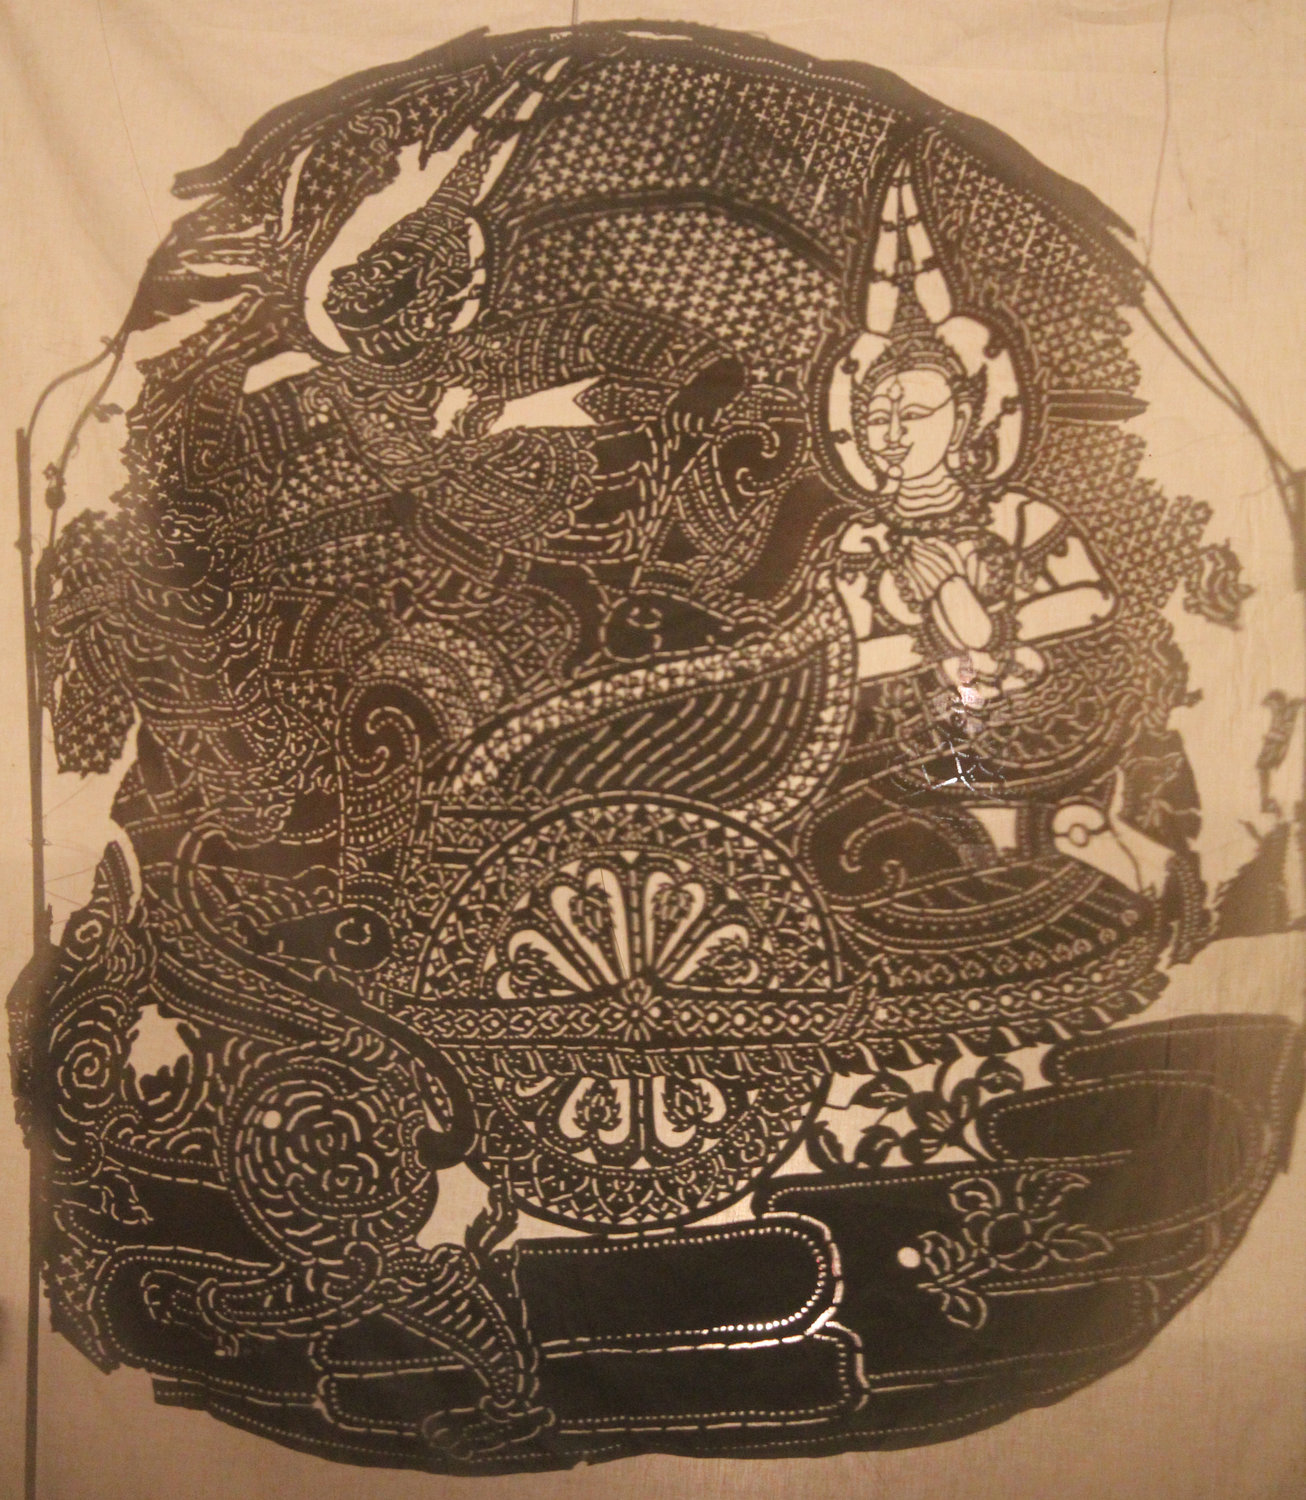 Reab (Râvana) enlevant Seda (Sîtâ) dans un char, figure du théâtre d'ombres <em>sbek thom</em>, Cambodge, vers 1910. The Cook / Marks Collection, Northwest Puppet Center. Photo: Dmitri Carter